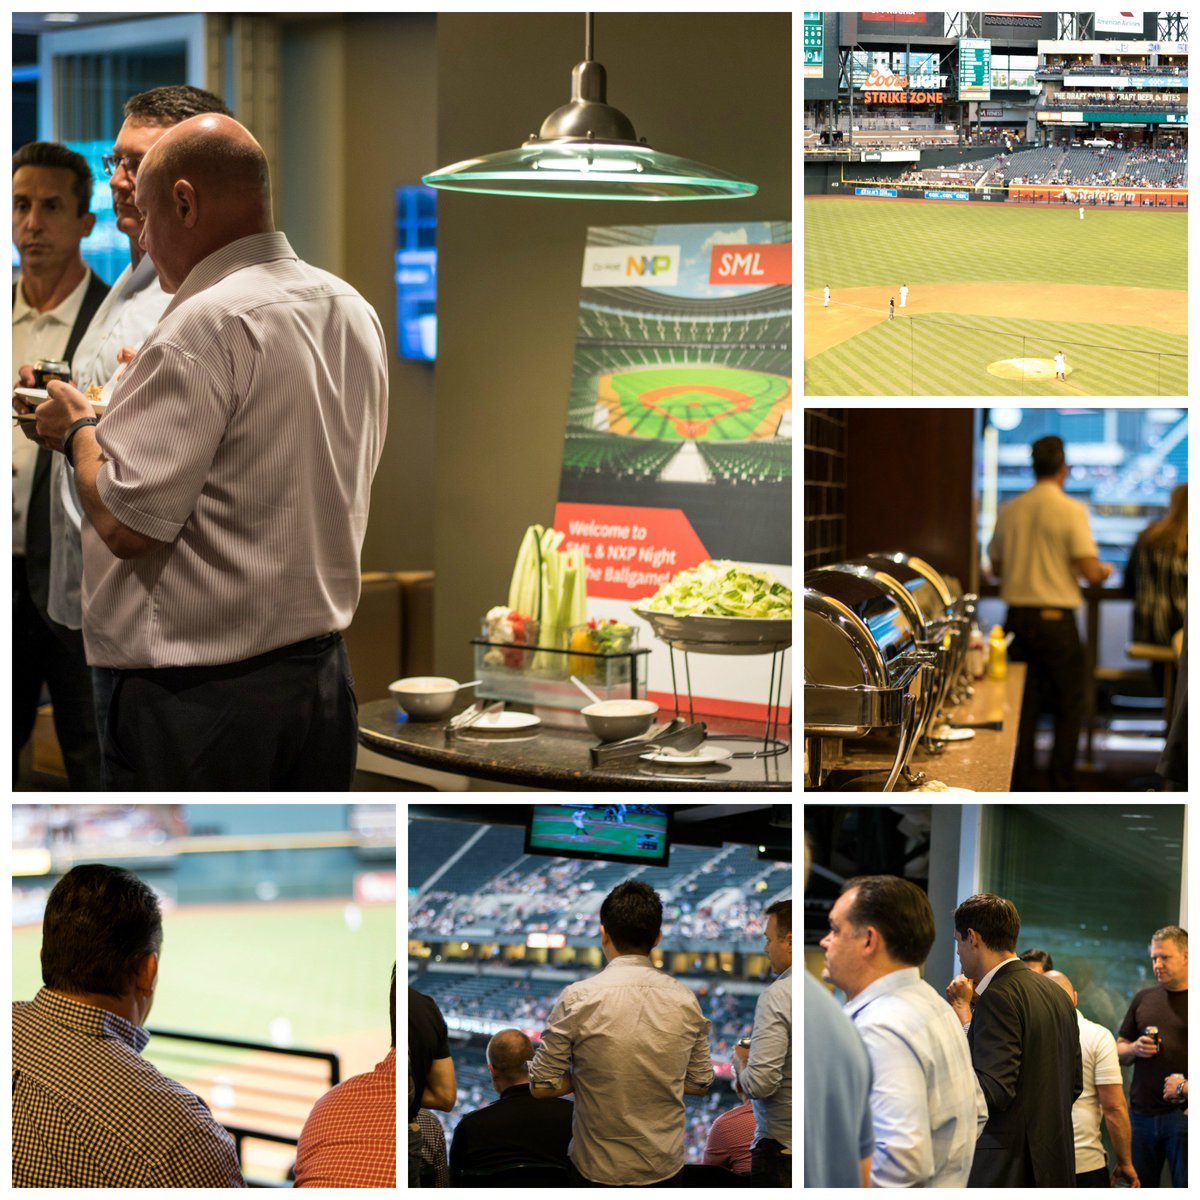 Here&#39;s a peek at some photos from SML&#39;s Night Out at the Ballgame last week. We enjoyed spending time with retailers and partners. #RFIDLIVE <br>http://pic.twitter.com/CJTF0jkE1F